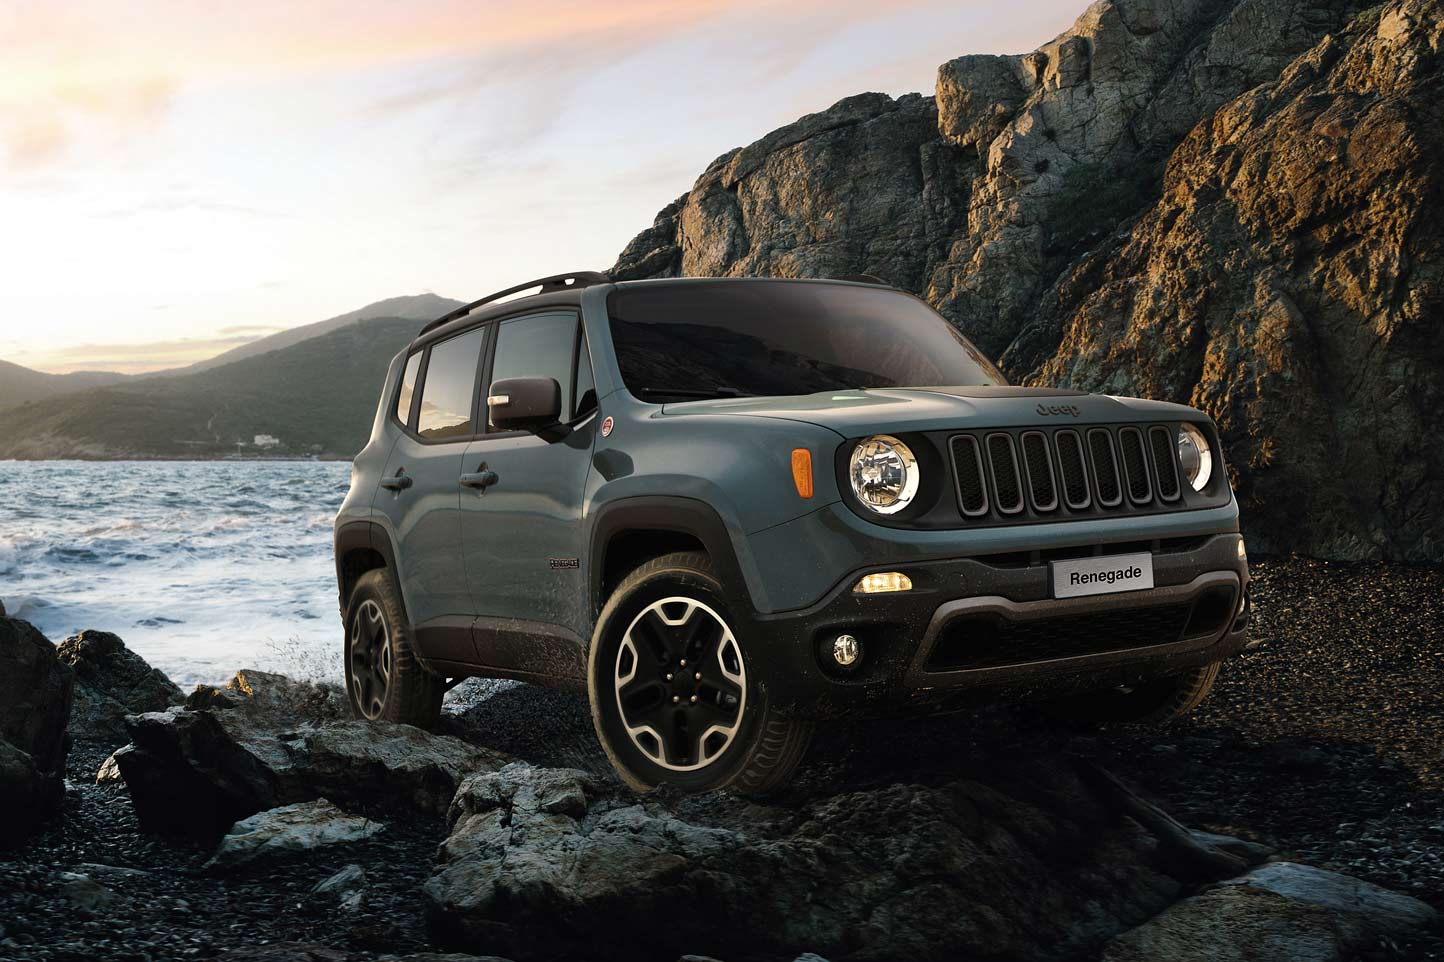 Jeep Renegade Wallpapers   Top Free Jeep Renegade ...